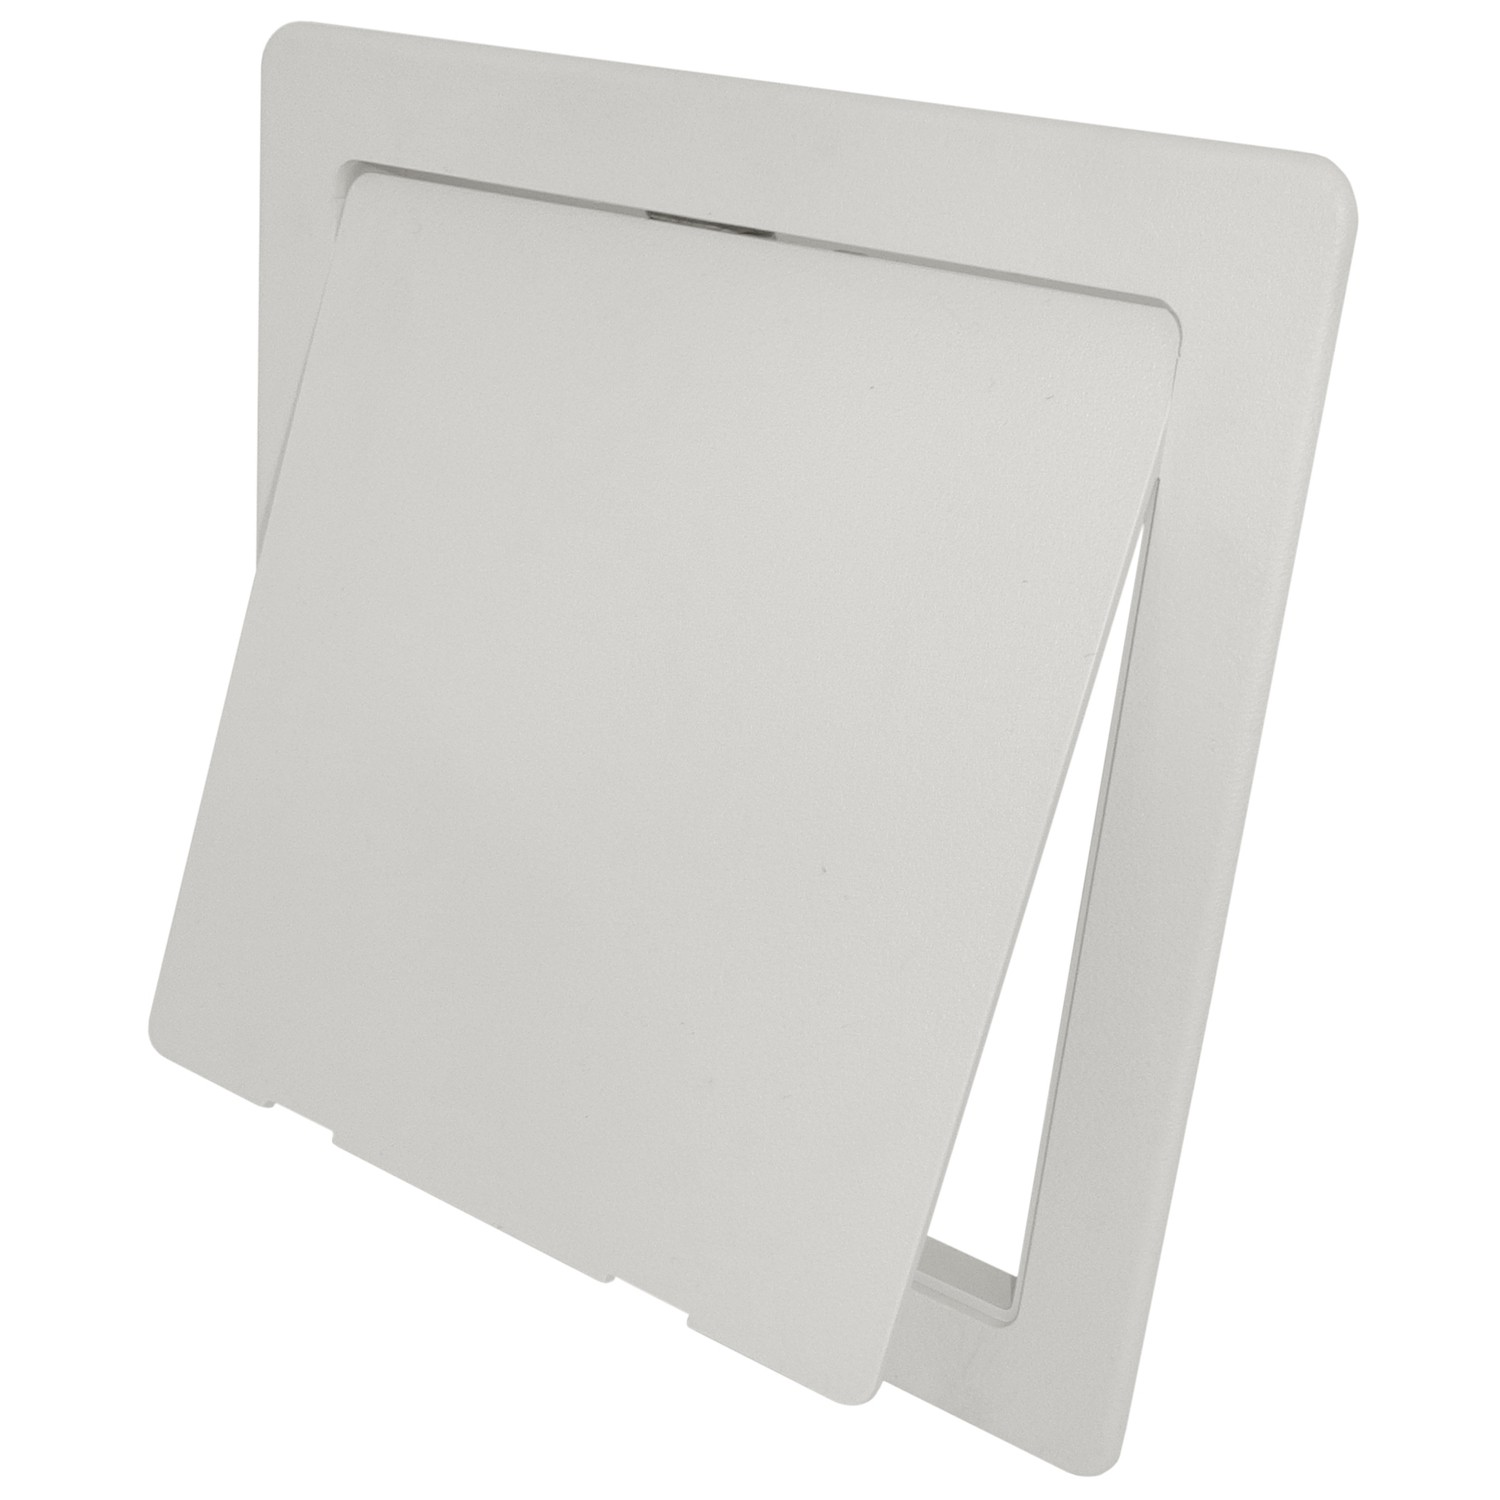 Arctic Plastic Access Panel - White, 300mm x 300mm